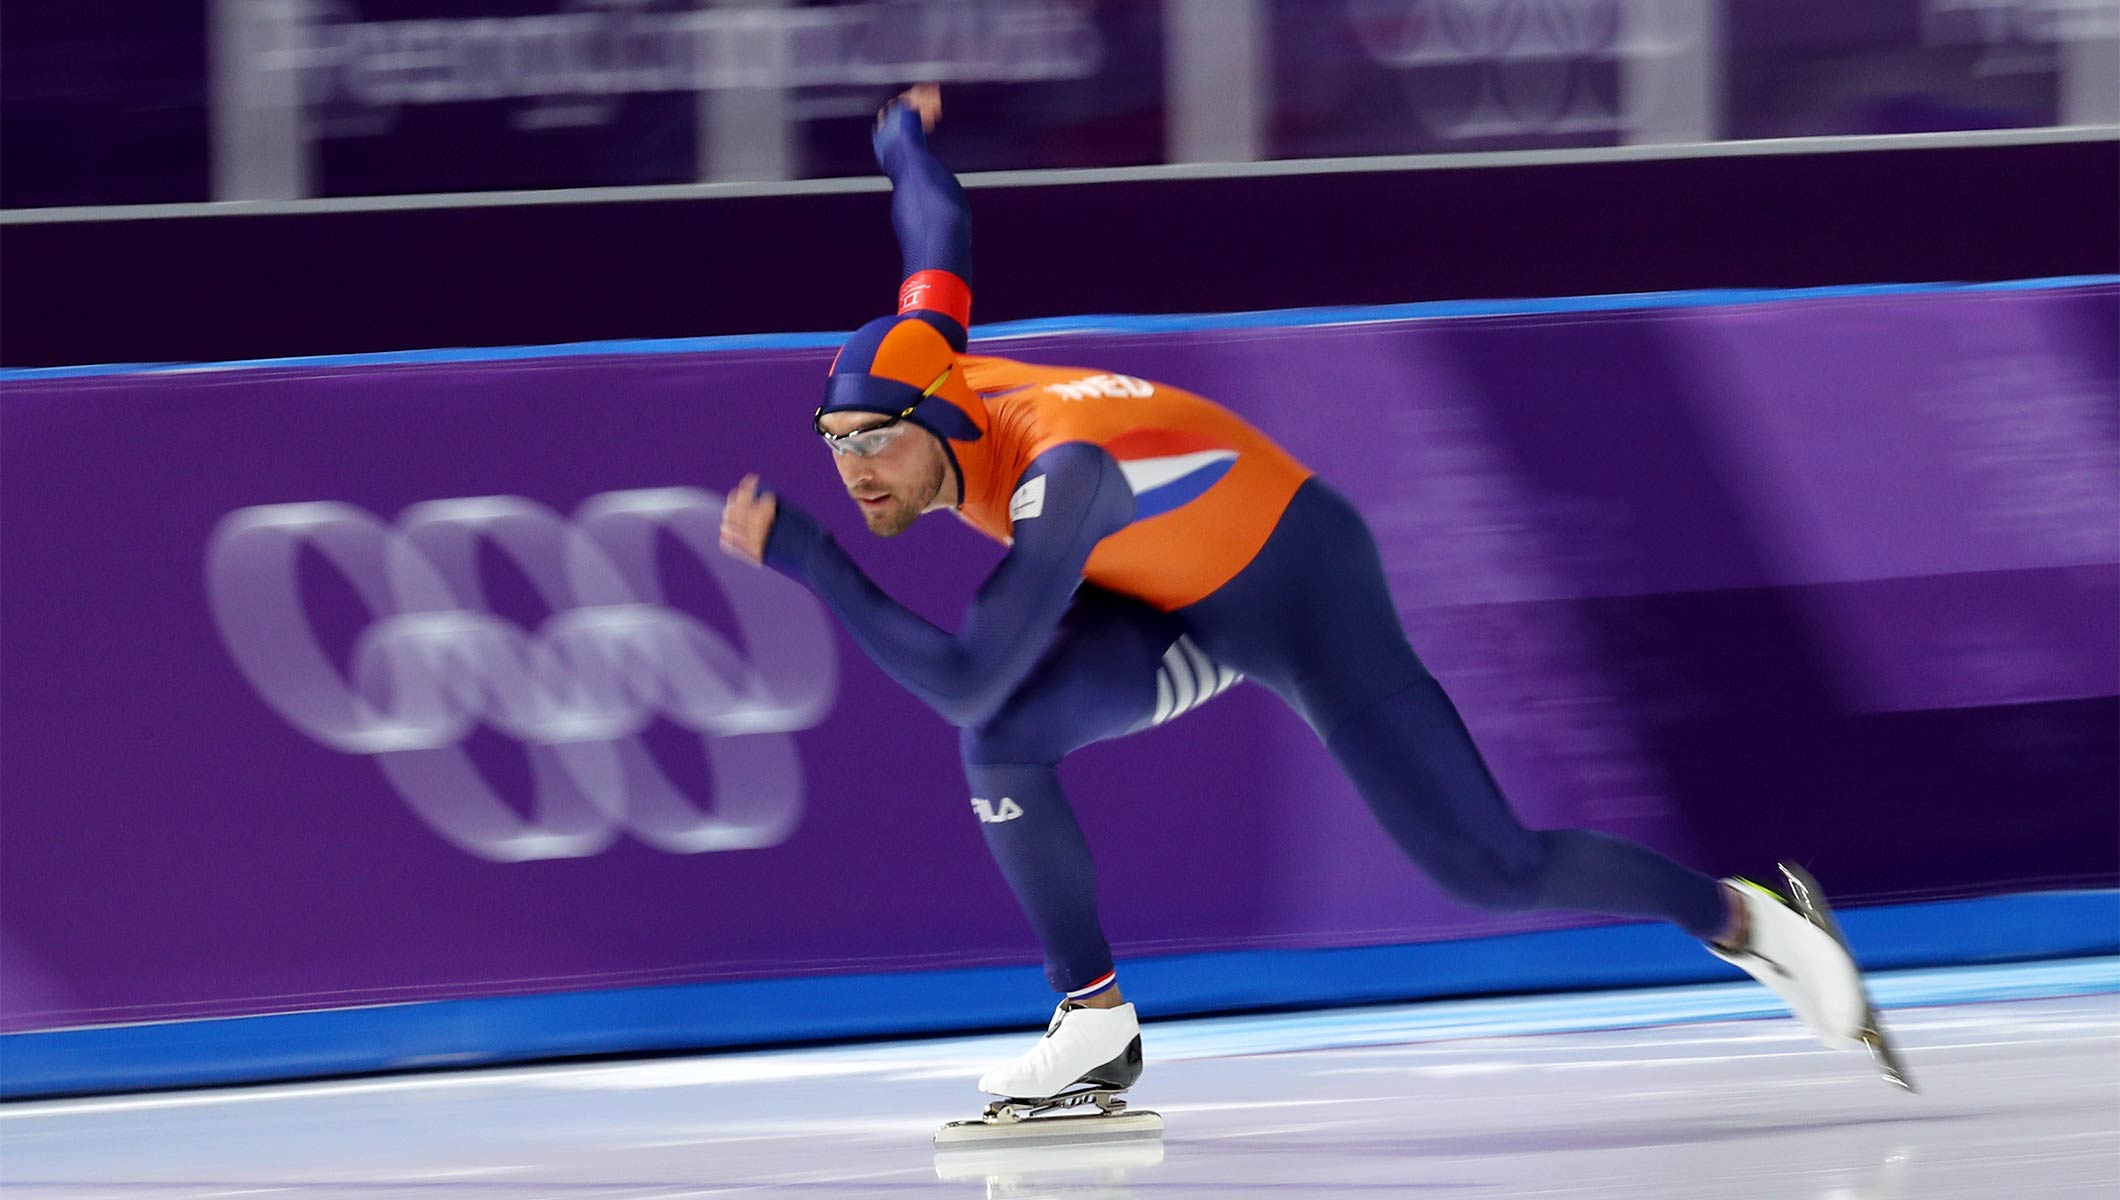 Nuis continues Dutch speed skating dominance with gold in men's 1,500m - Olympic News